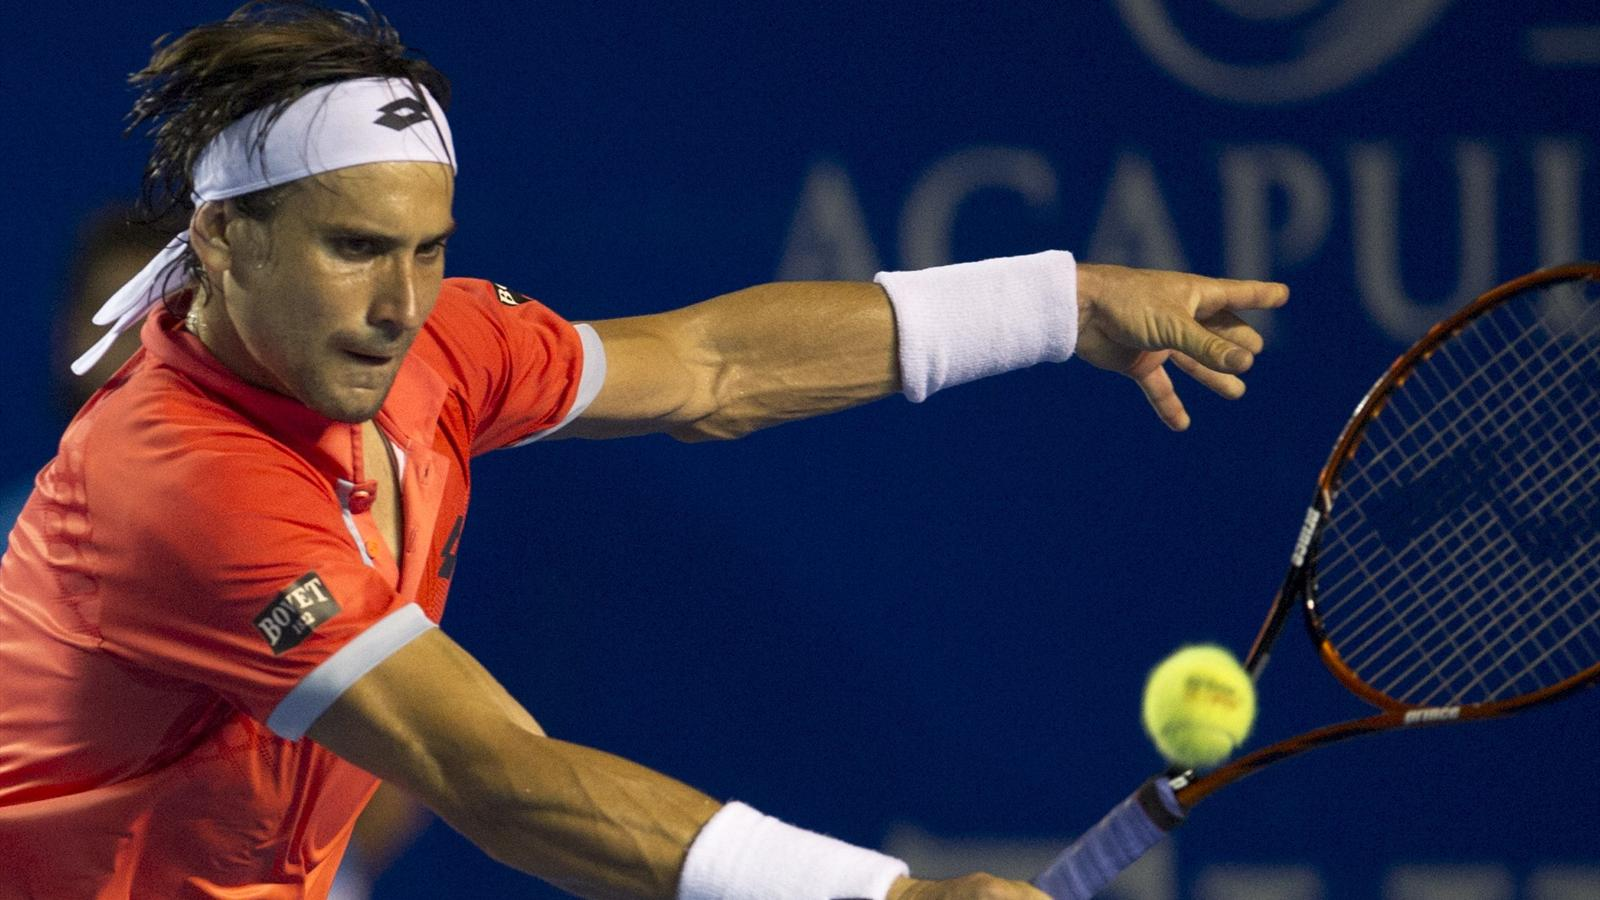 david ferrer returning balls to nishikori kei in acapulco tennis 2015